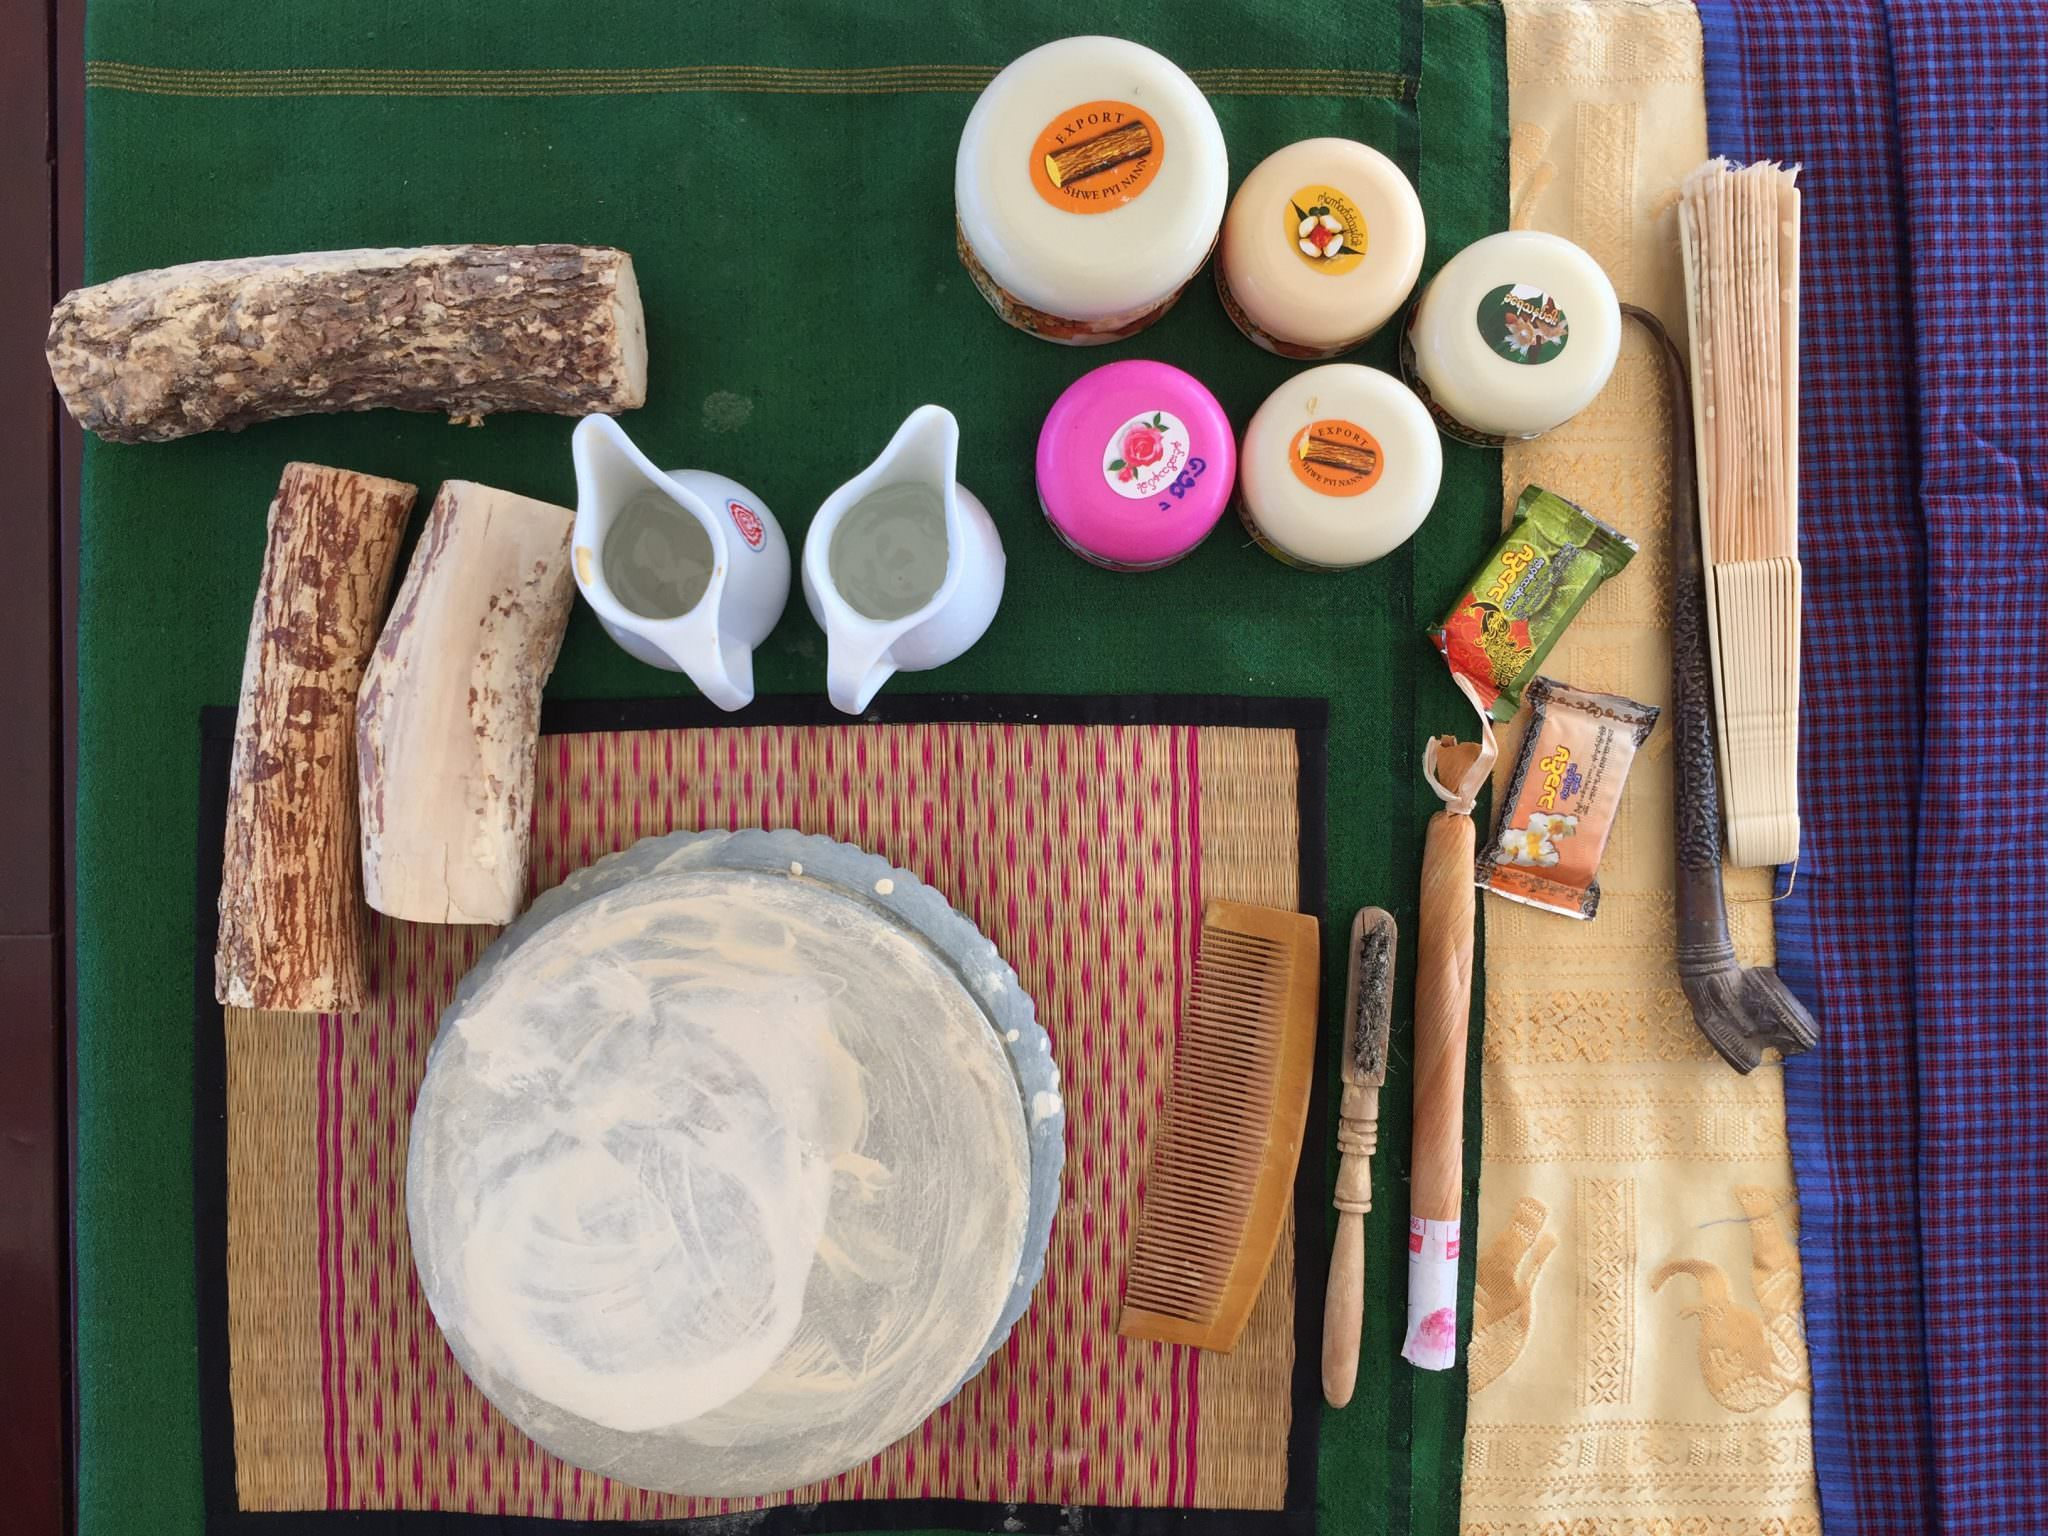 Stumps of the thanaka tree are set for our demonstration on the mysterious beauty cream. © 2015 Gail Jessen